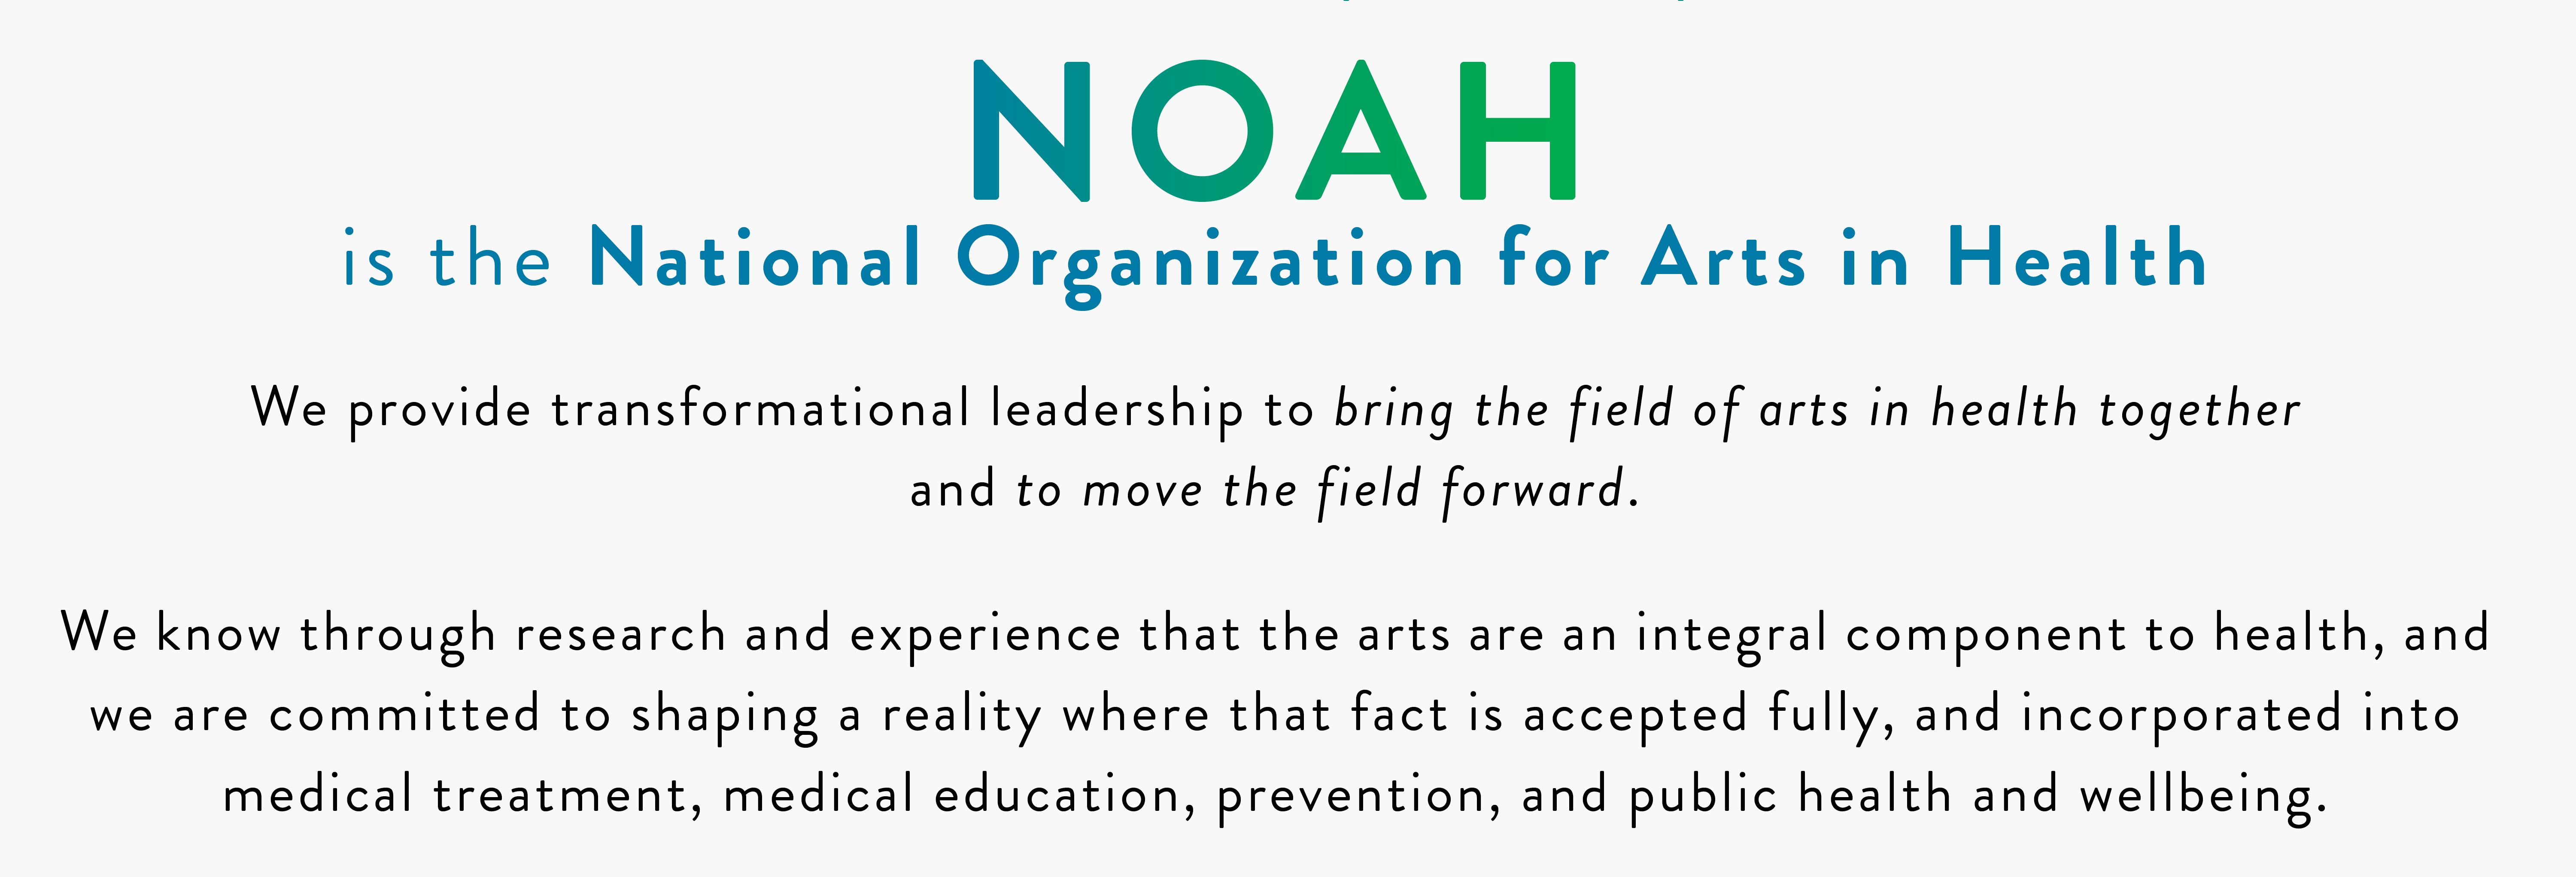 NOAH is the National Organization for Arts in Health We provide transformational leadership to bring the field of arts in health together and to move the field forward. We know through research and experience that the arts are an integral component to health, and we are committed to shaping a reality where that fact is accepted fully, and incorporated into medical treatment, medical education, prevention, and public health and wellbeing.